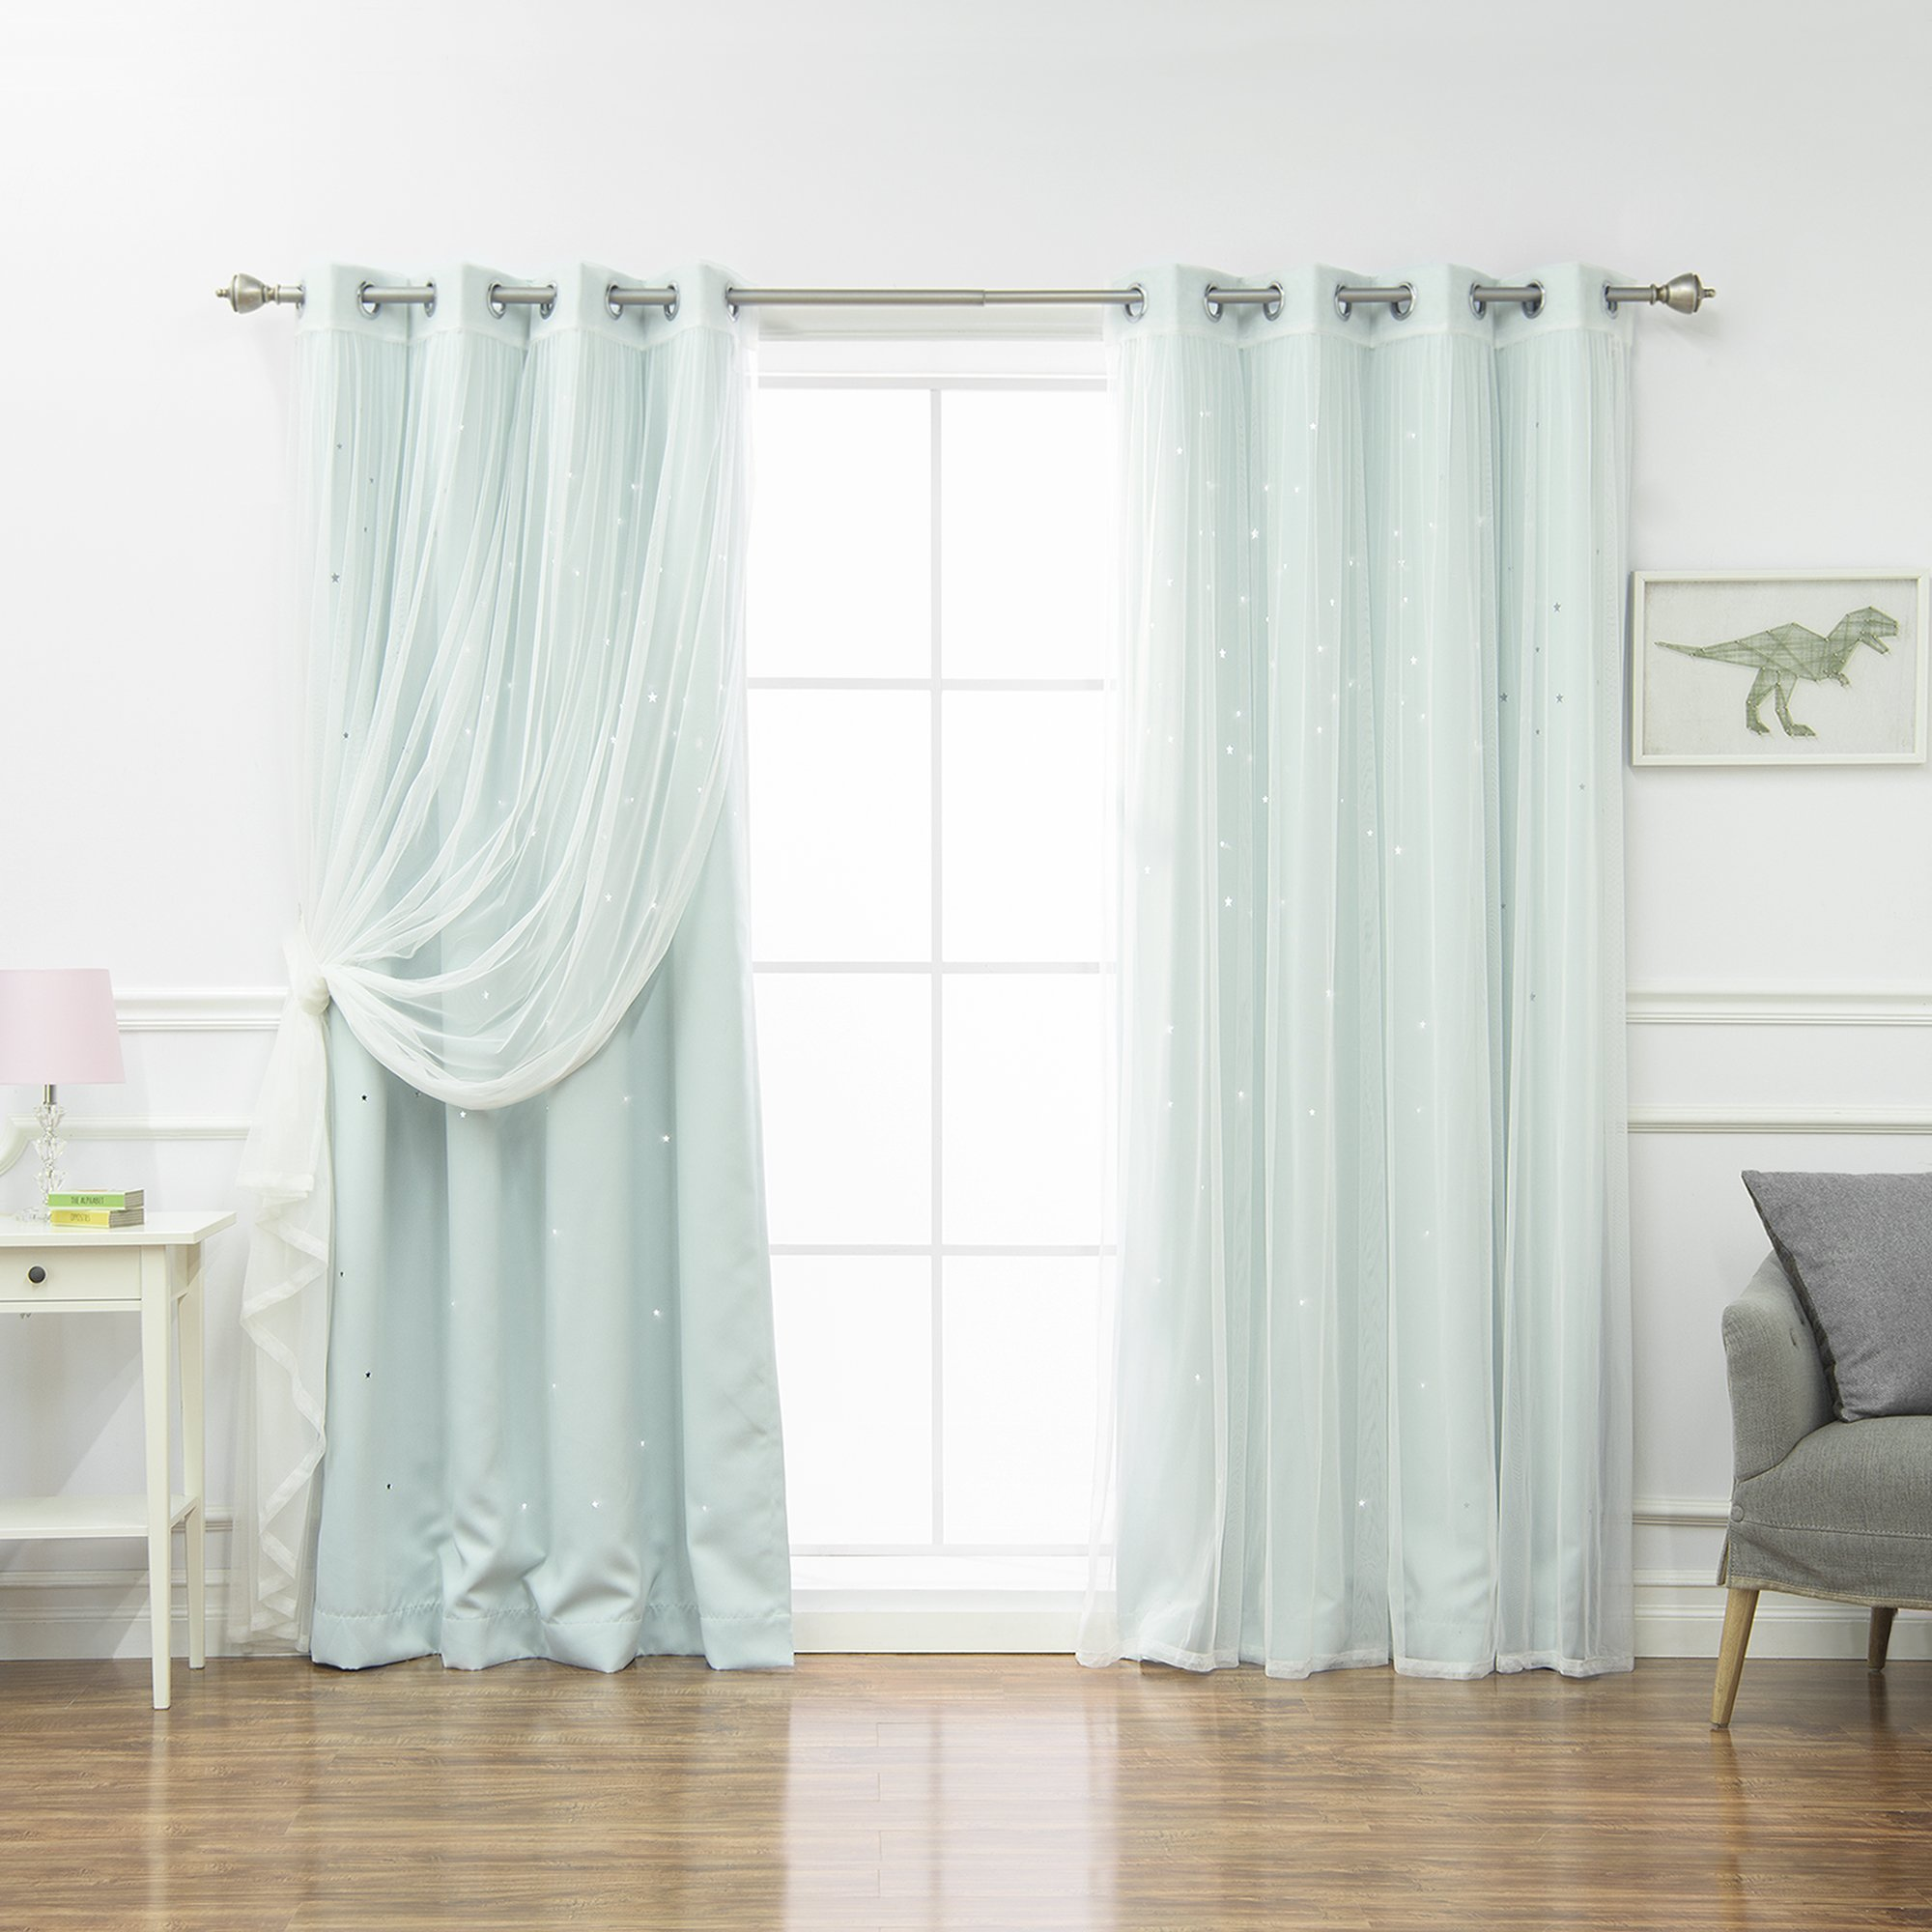 Best Home Fashion Mix & Match Tulle & Star Cut Out Blackout Curtains - Mint - 52''W x 84''L - (2 Curtains and 2 Sheer curtains)